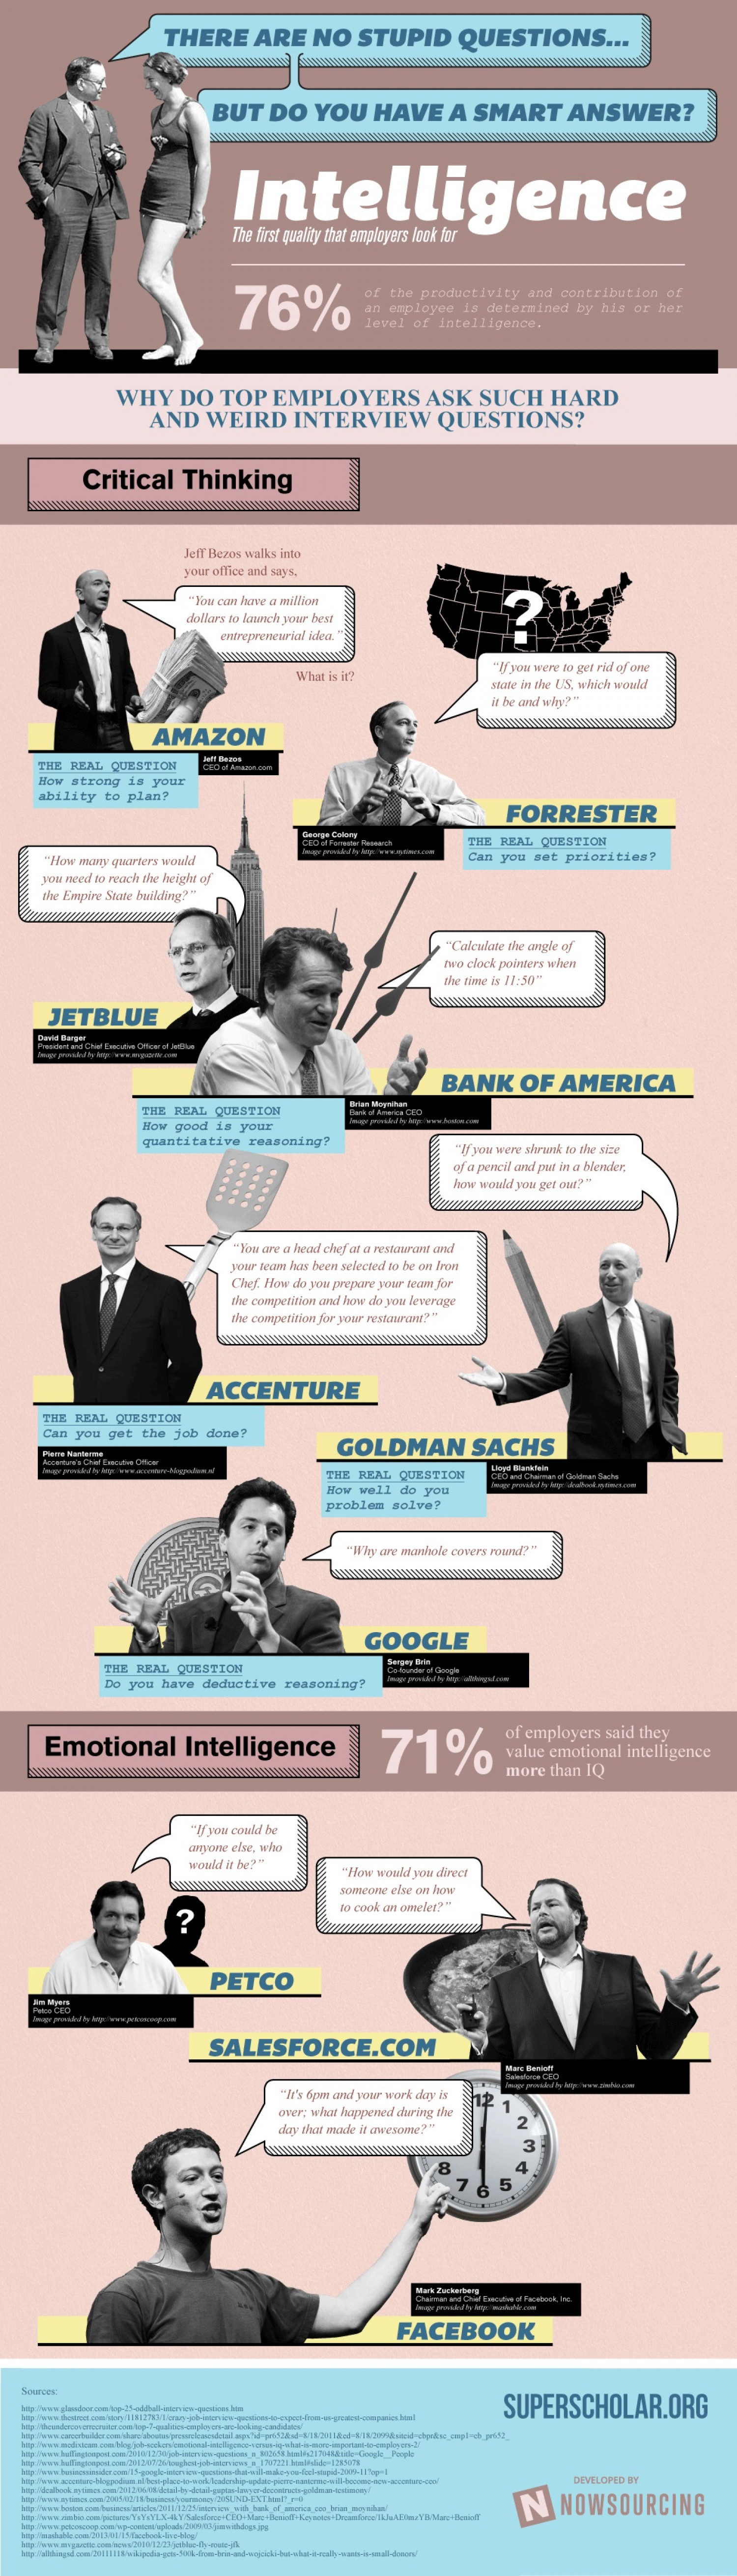 There are No Stupid Questions... Infographic